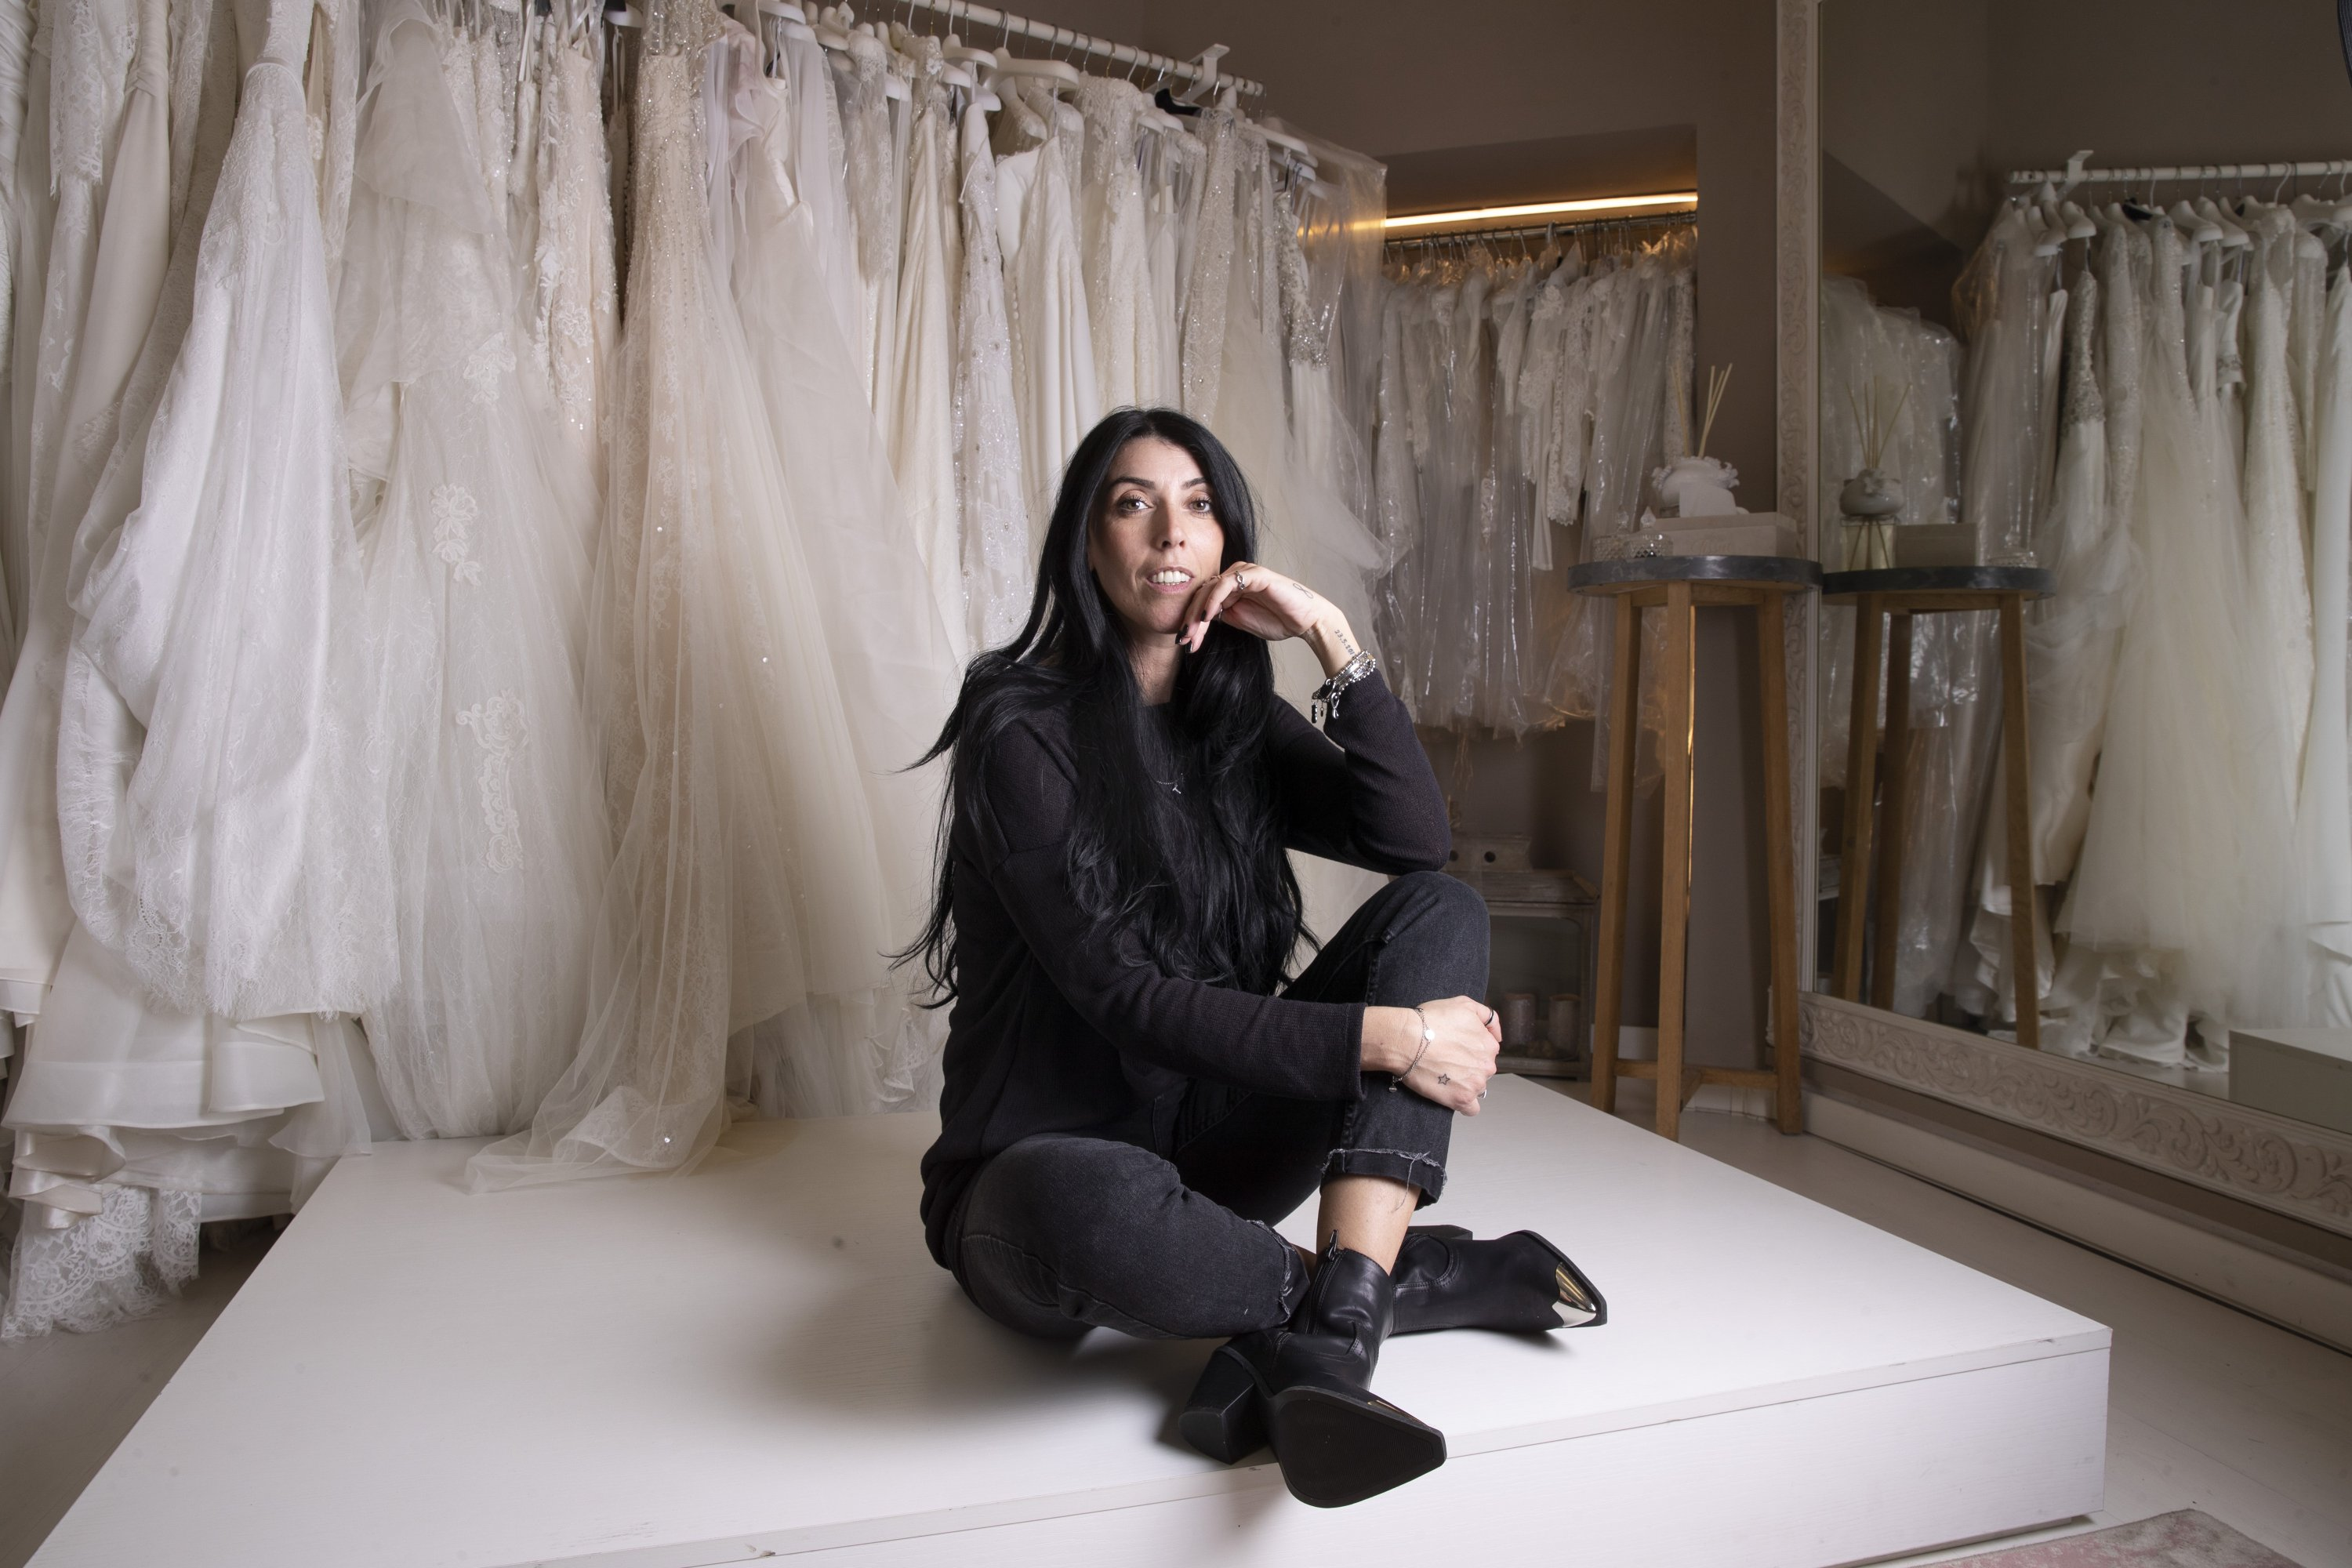 Anita Galafate poses in a wedding dress shop in Rome, Italy, March 9, 2021. (AP Photo)